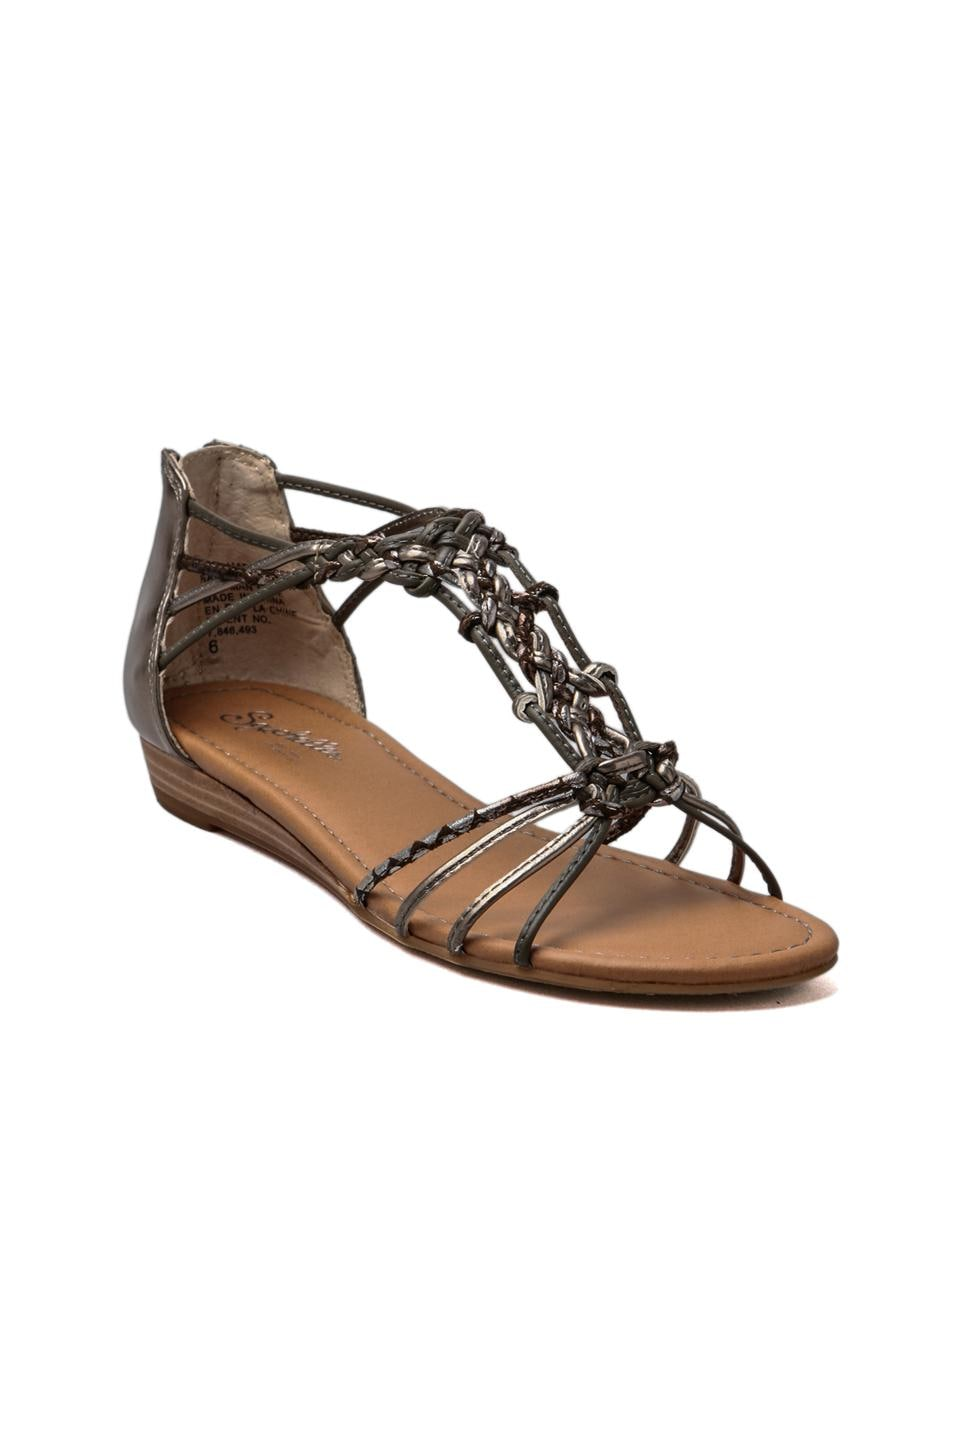 Seychelles Treat Yourself Sandal in Pewter